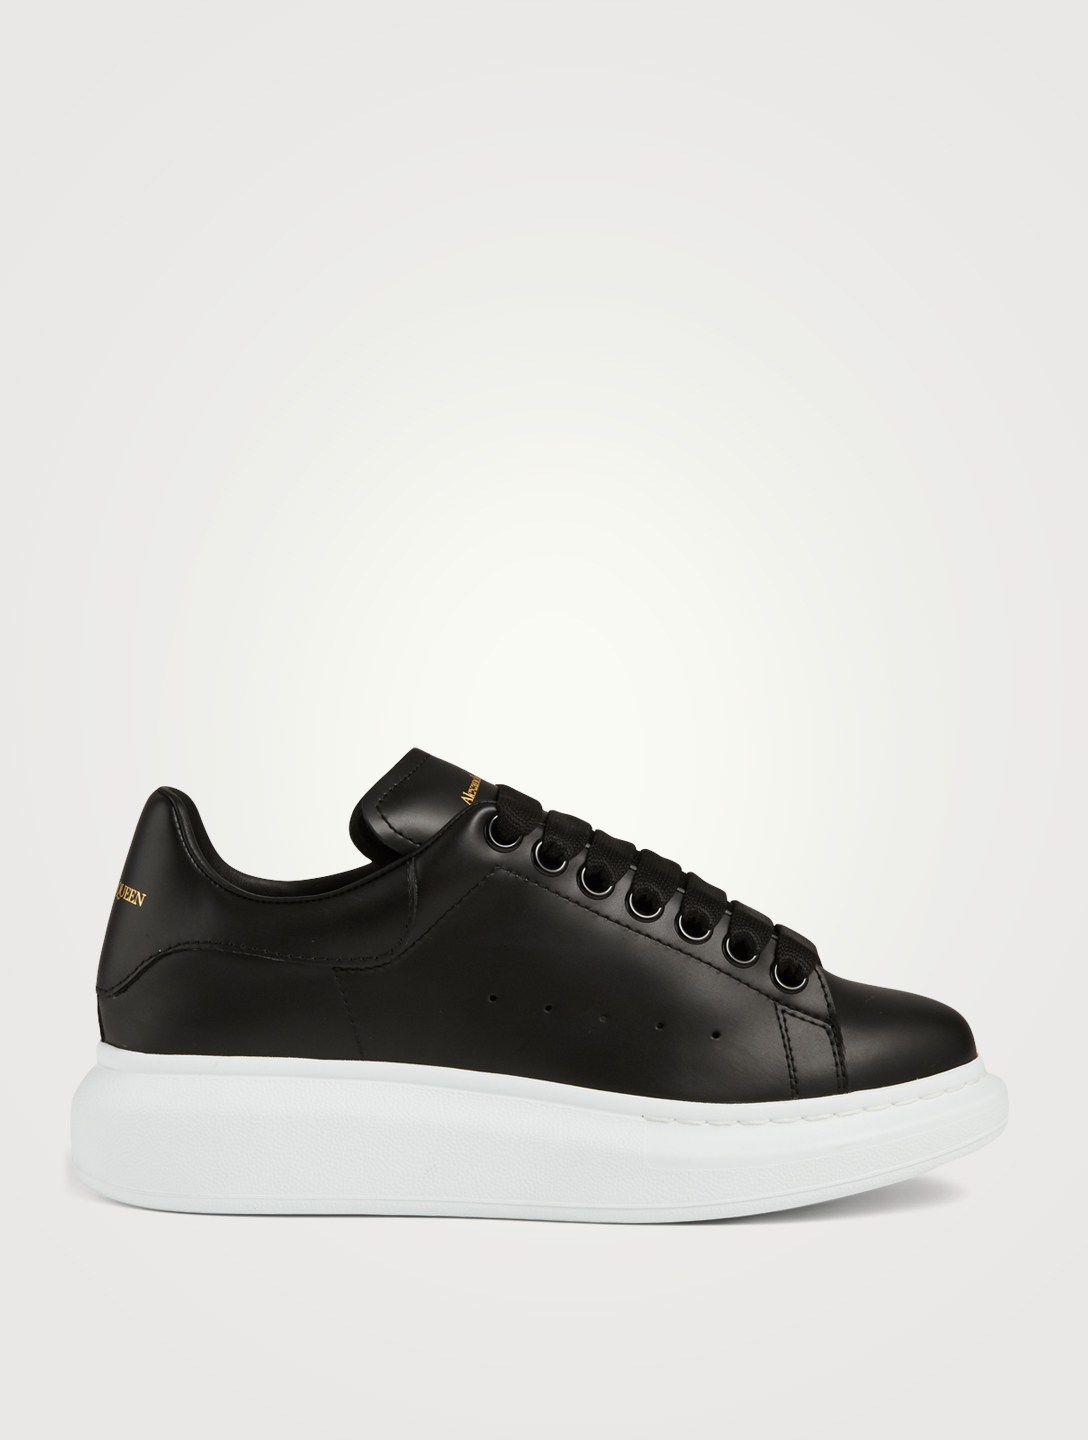 ALEXANDER MCQUEEN Oversized Leather Sneakers Women's Black